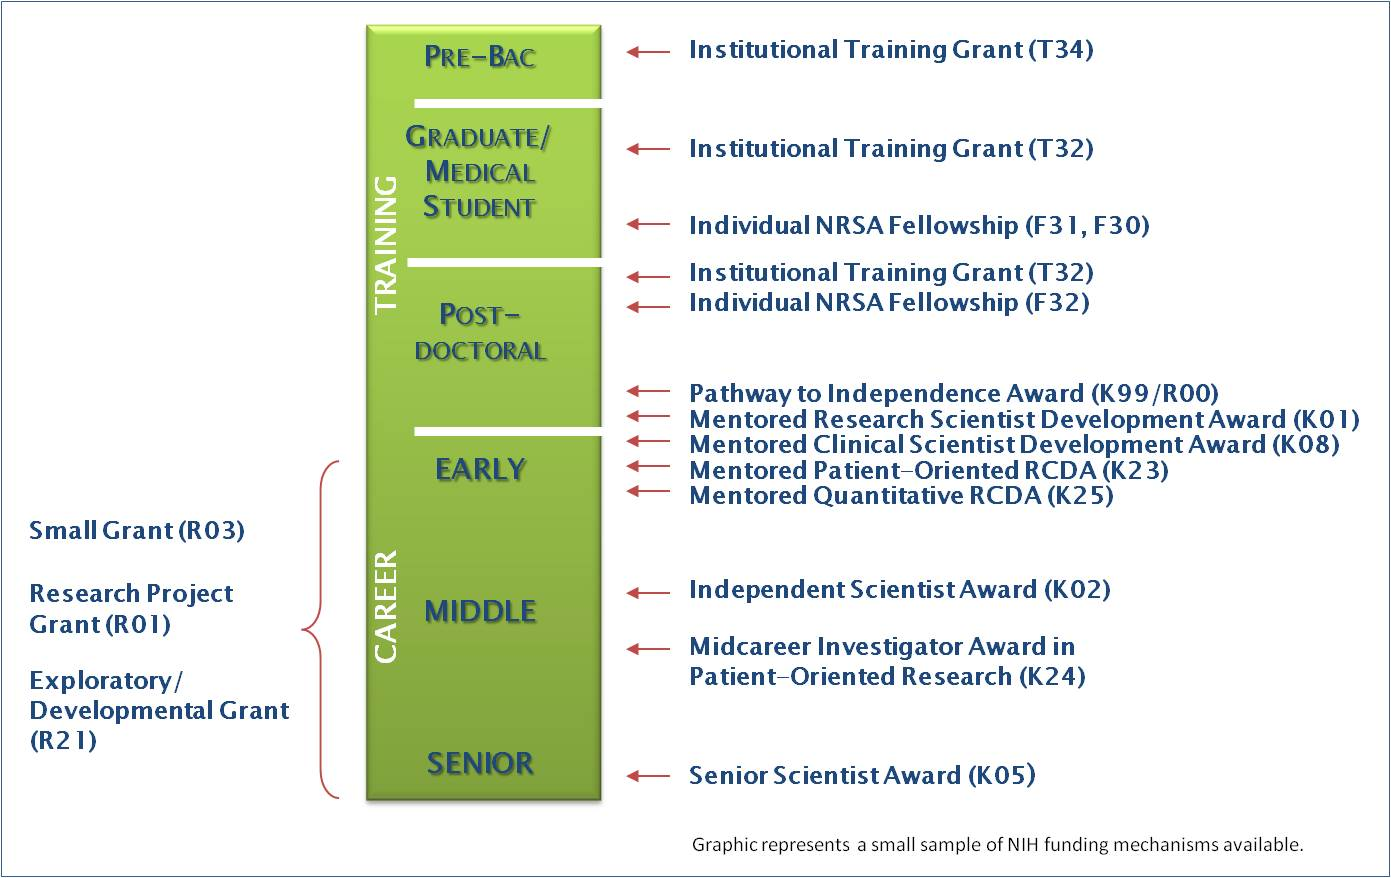 graphic shows a selection of NIH grant program and the approximate career stage in which people receive these awards